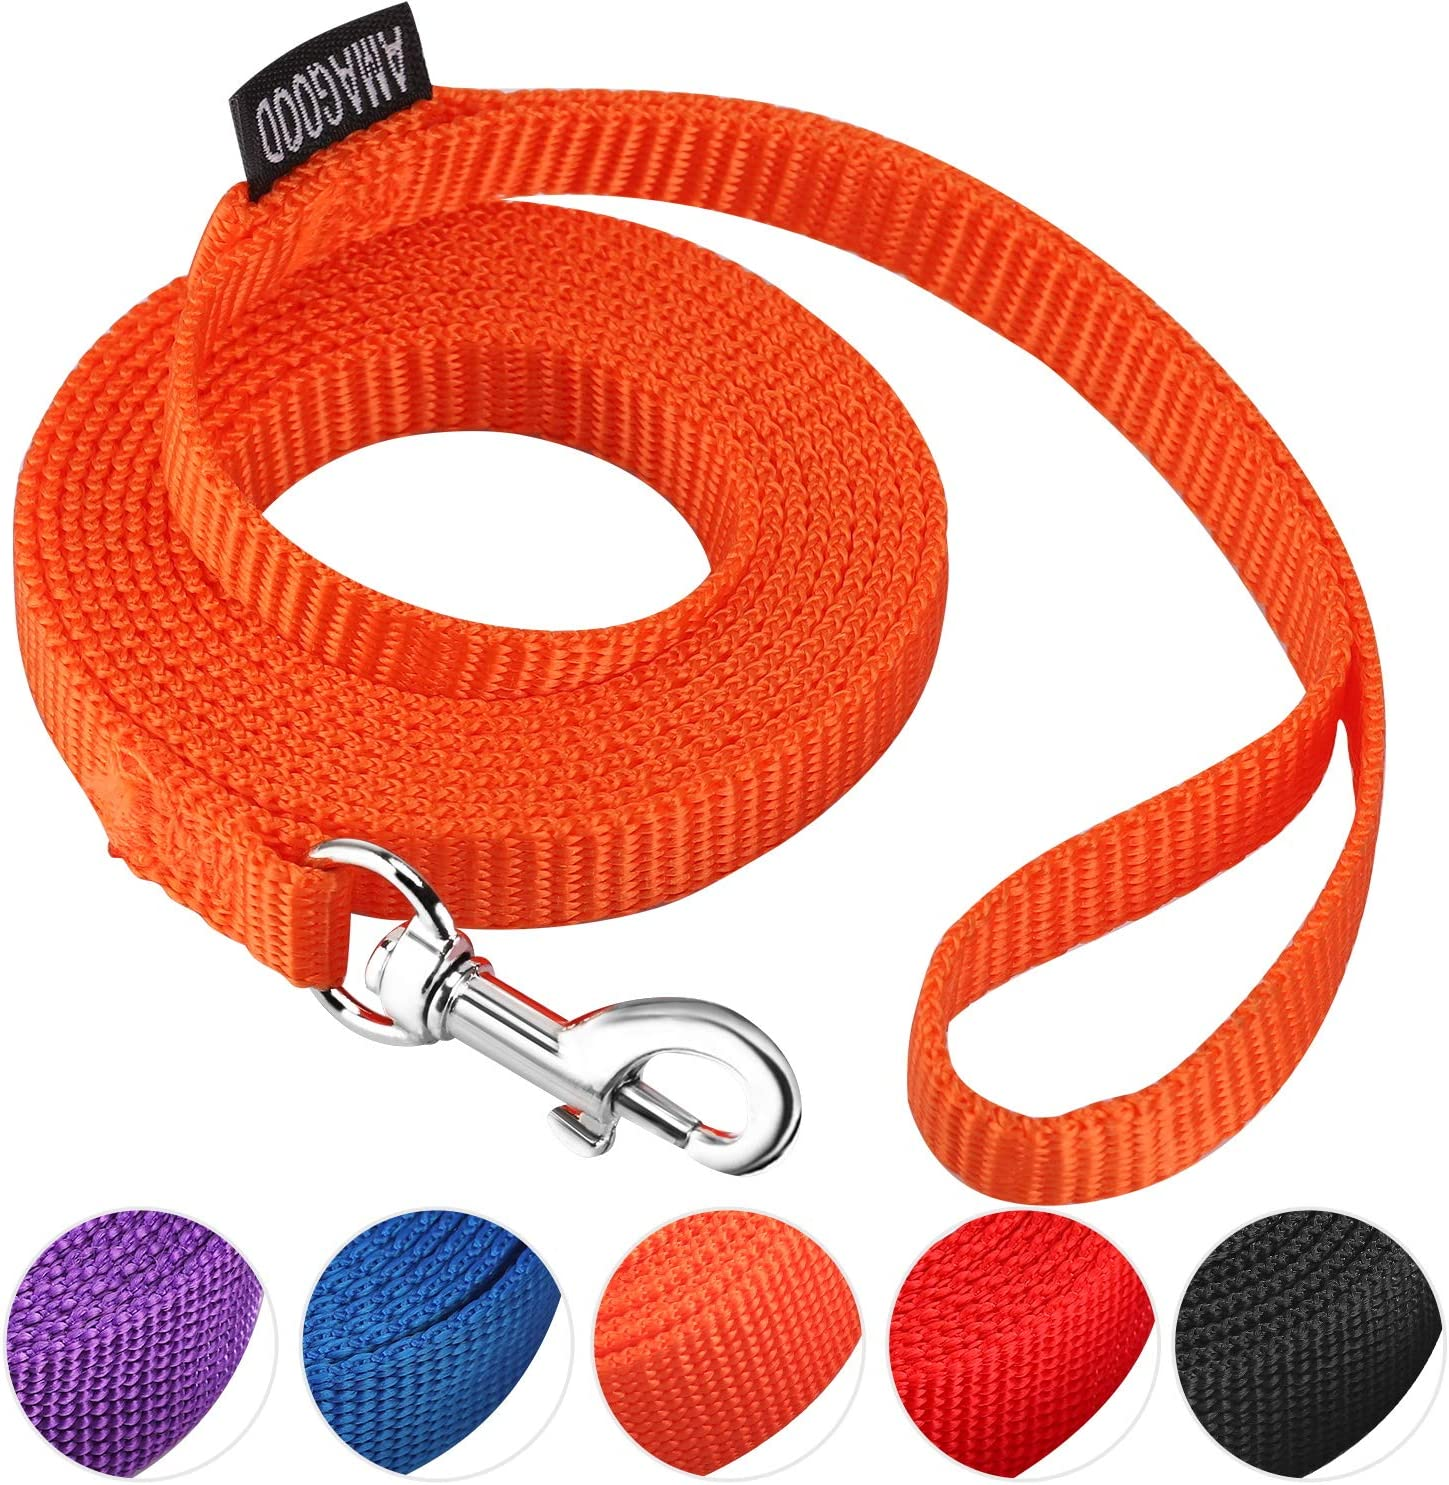 AMAGOOD 6 FT Oklahoma Max 58% OFF City Mall Cat Leash Strong and Lea Durable Style Traditional